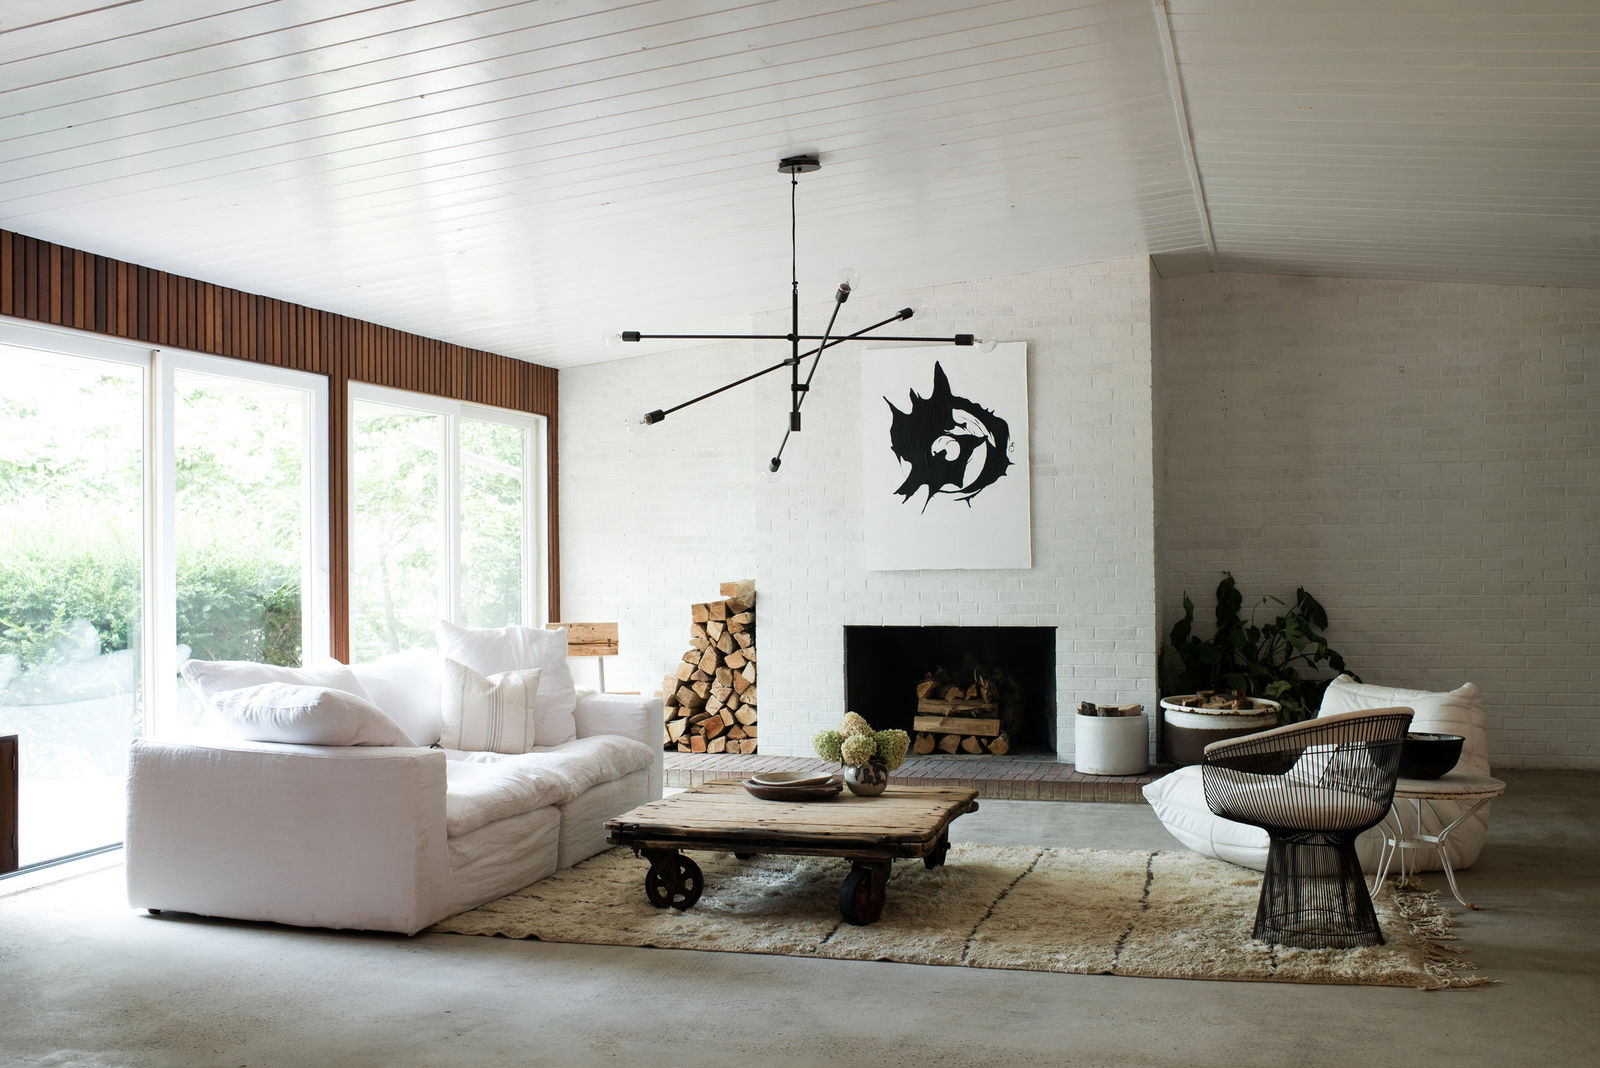 Interior design ideas & beautiful home decor ! A living room with Midcentury Modern design, white walls and furniture, and Sputnik chandelier. Design by Leanne Ford. #livingroom #interiordesign #midcenturymodern #leanneford #allwhite #whitedecor